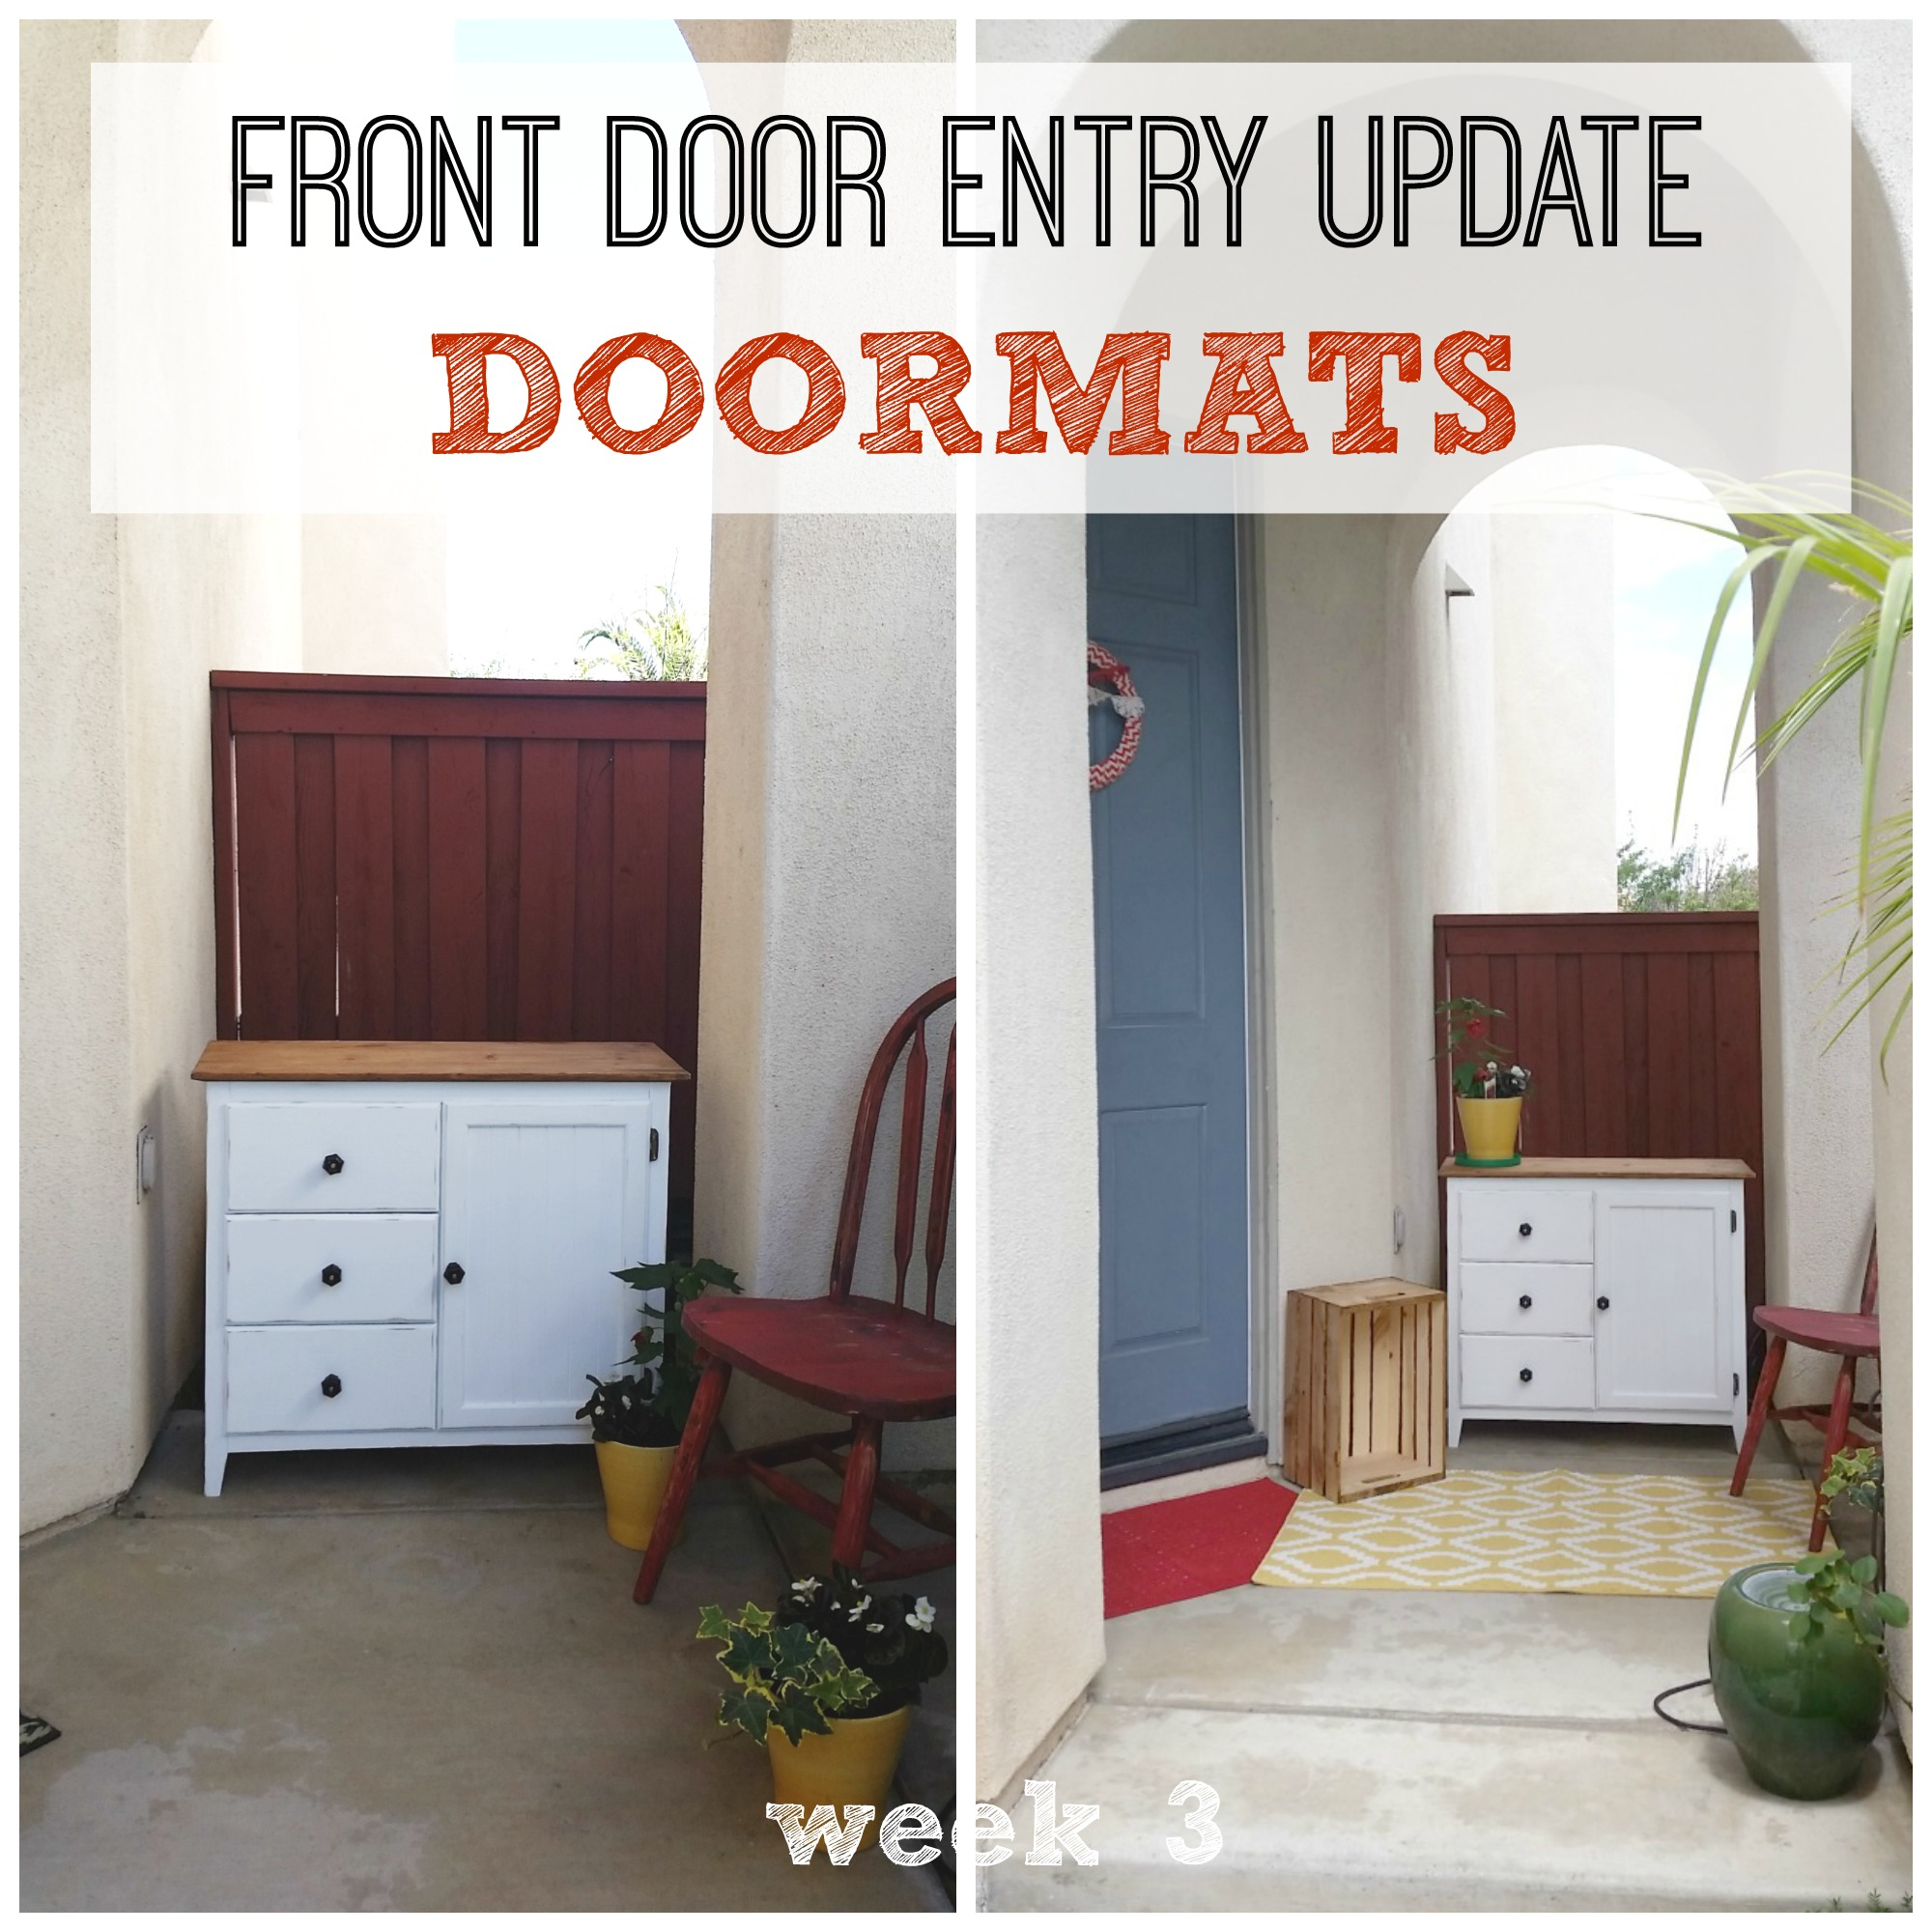 Front door entry update - doormats week 3